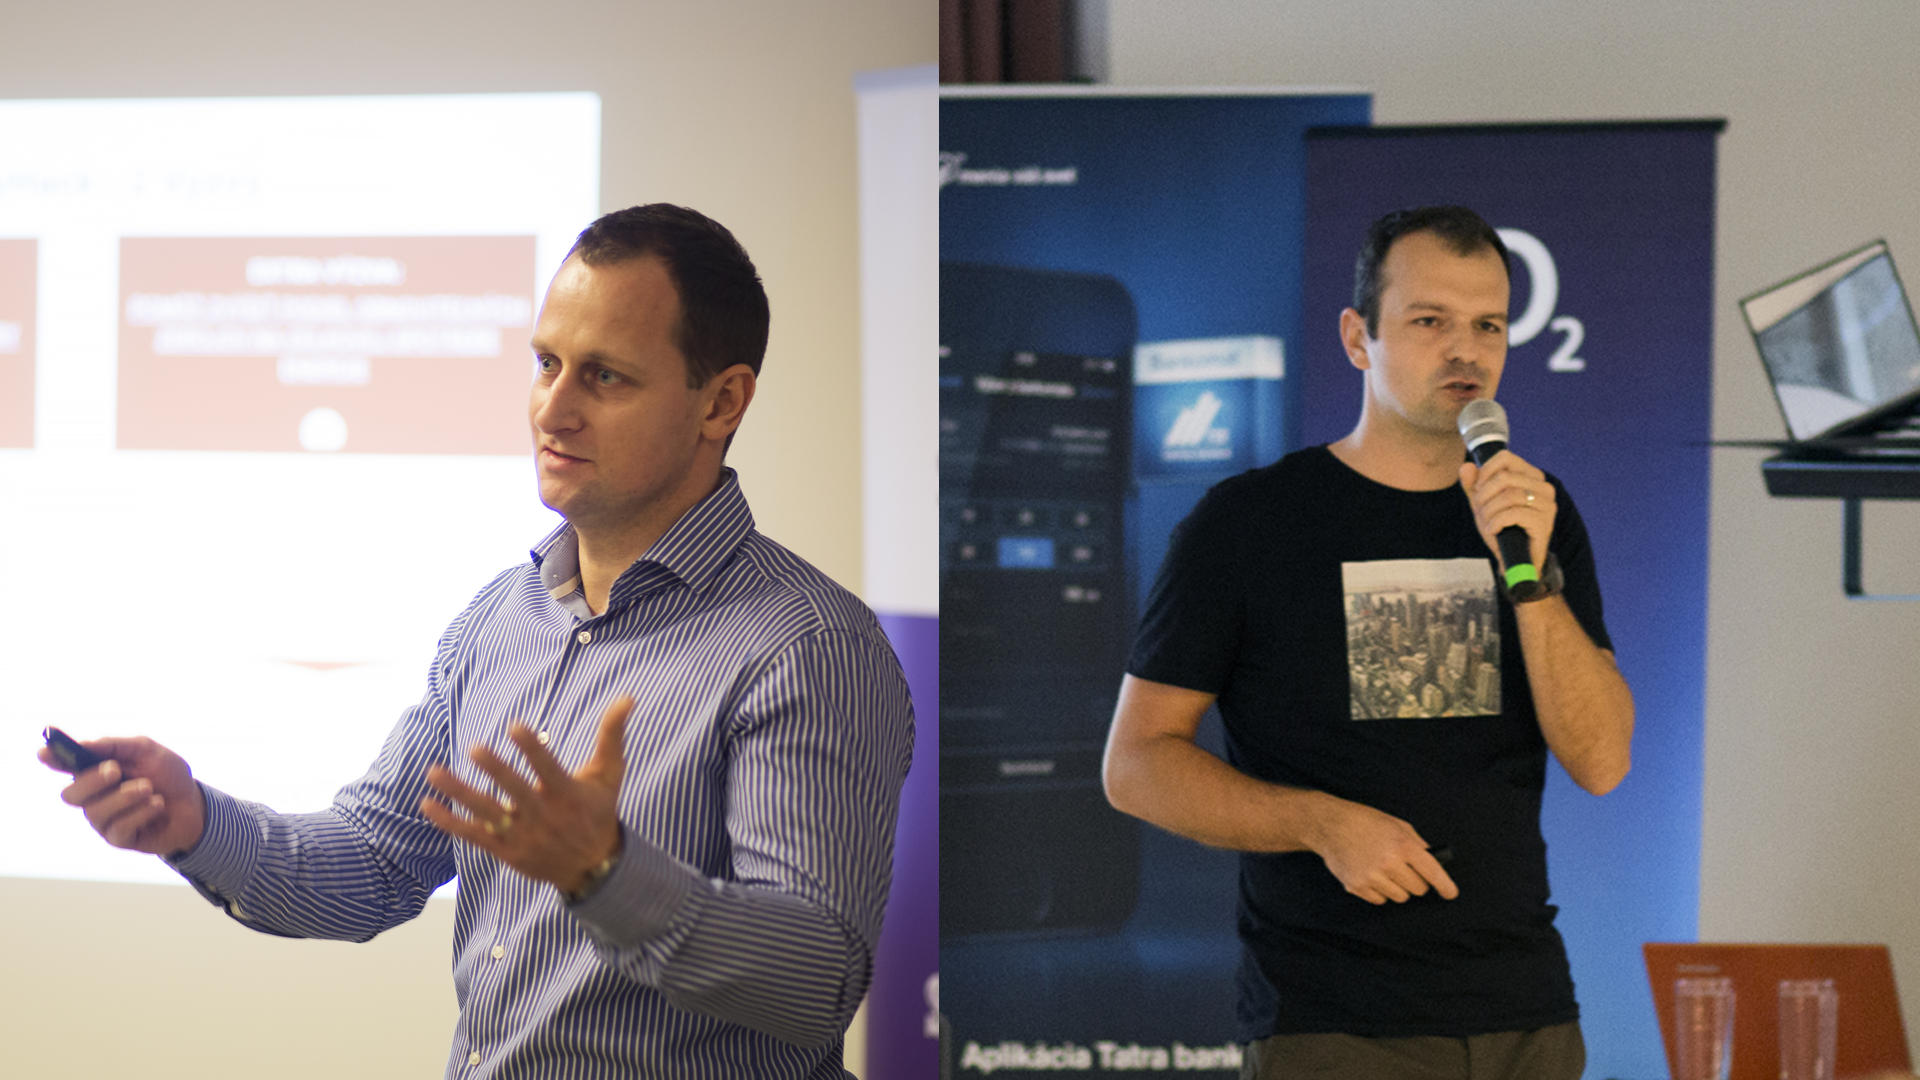 UPLIFT organizers - Braňo Šmidt (left) from Impact Hub and Peter Kolesár (right) from Neulogy